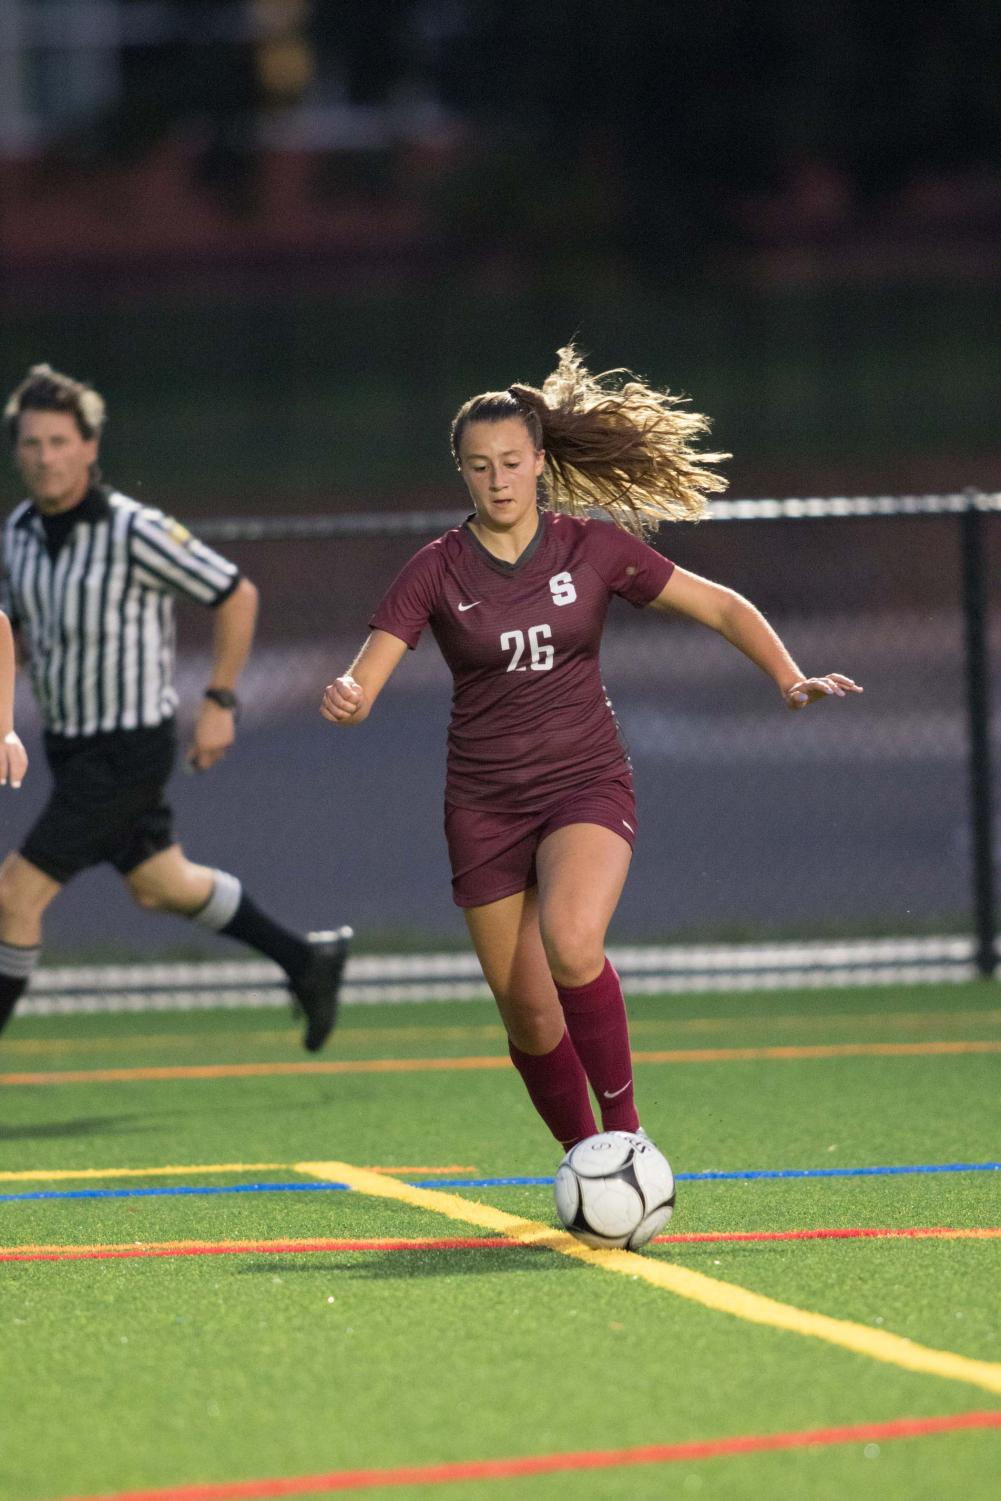 """Senior Megan Stoltzfus moves the ball up the field at the girls soccer game on September 10th. The team defeated Red Land 2-1. """"I think it depends how much work you put into it, and I think going into the second half, our team had the mindset that we were going to work hard and we were going to win."""" Photo Courtesy of Michael Houtz"""